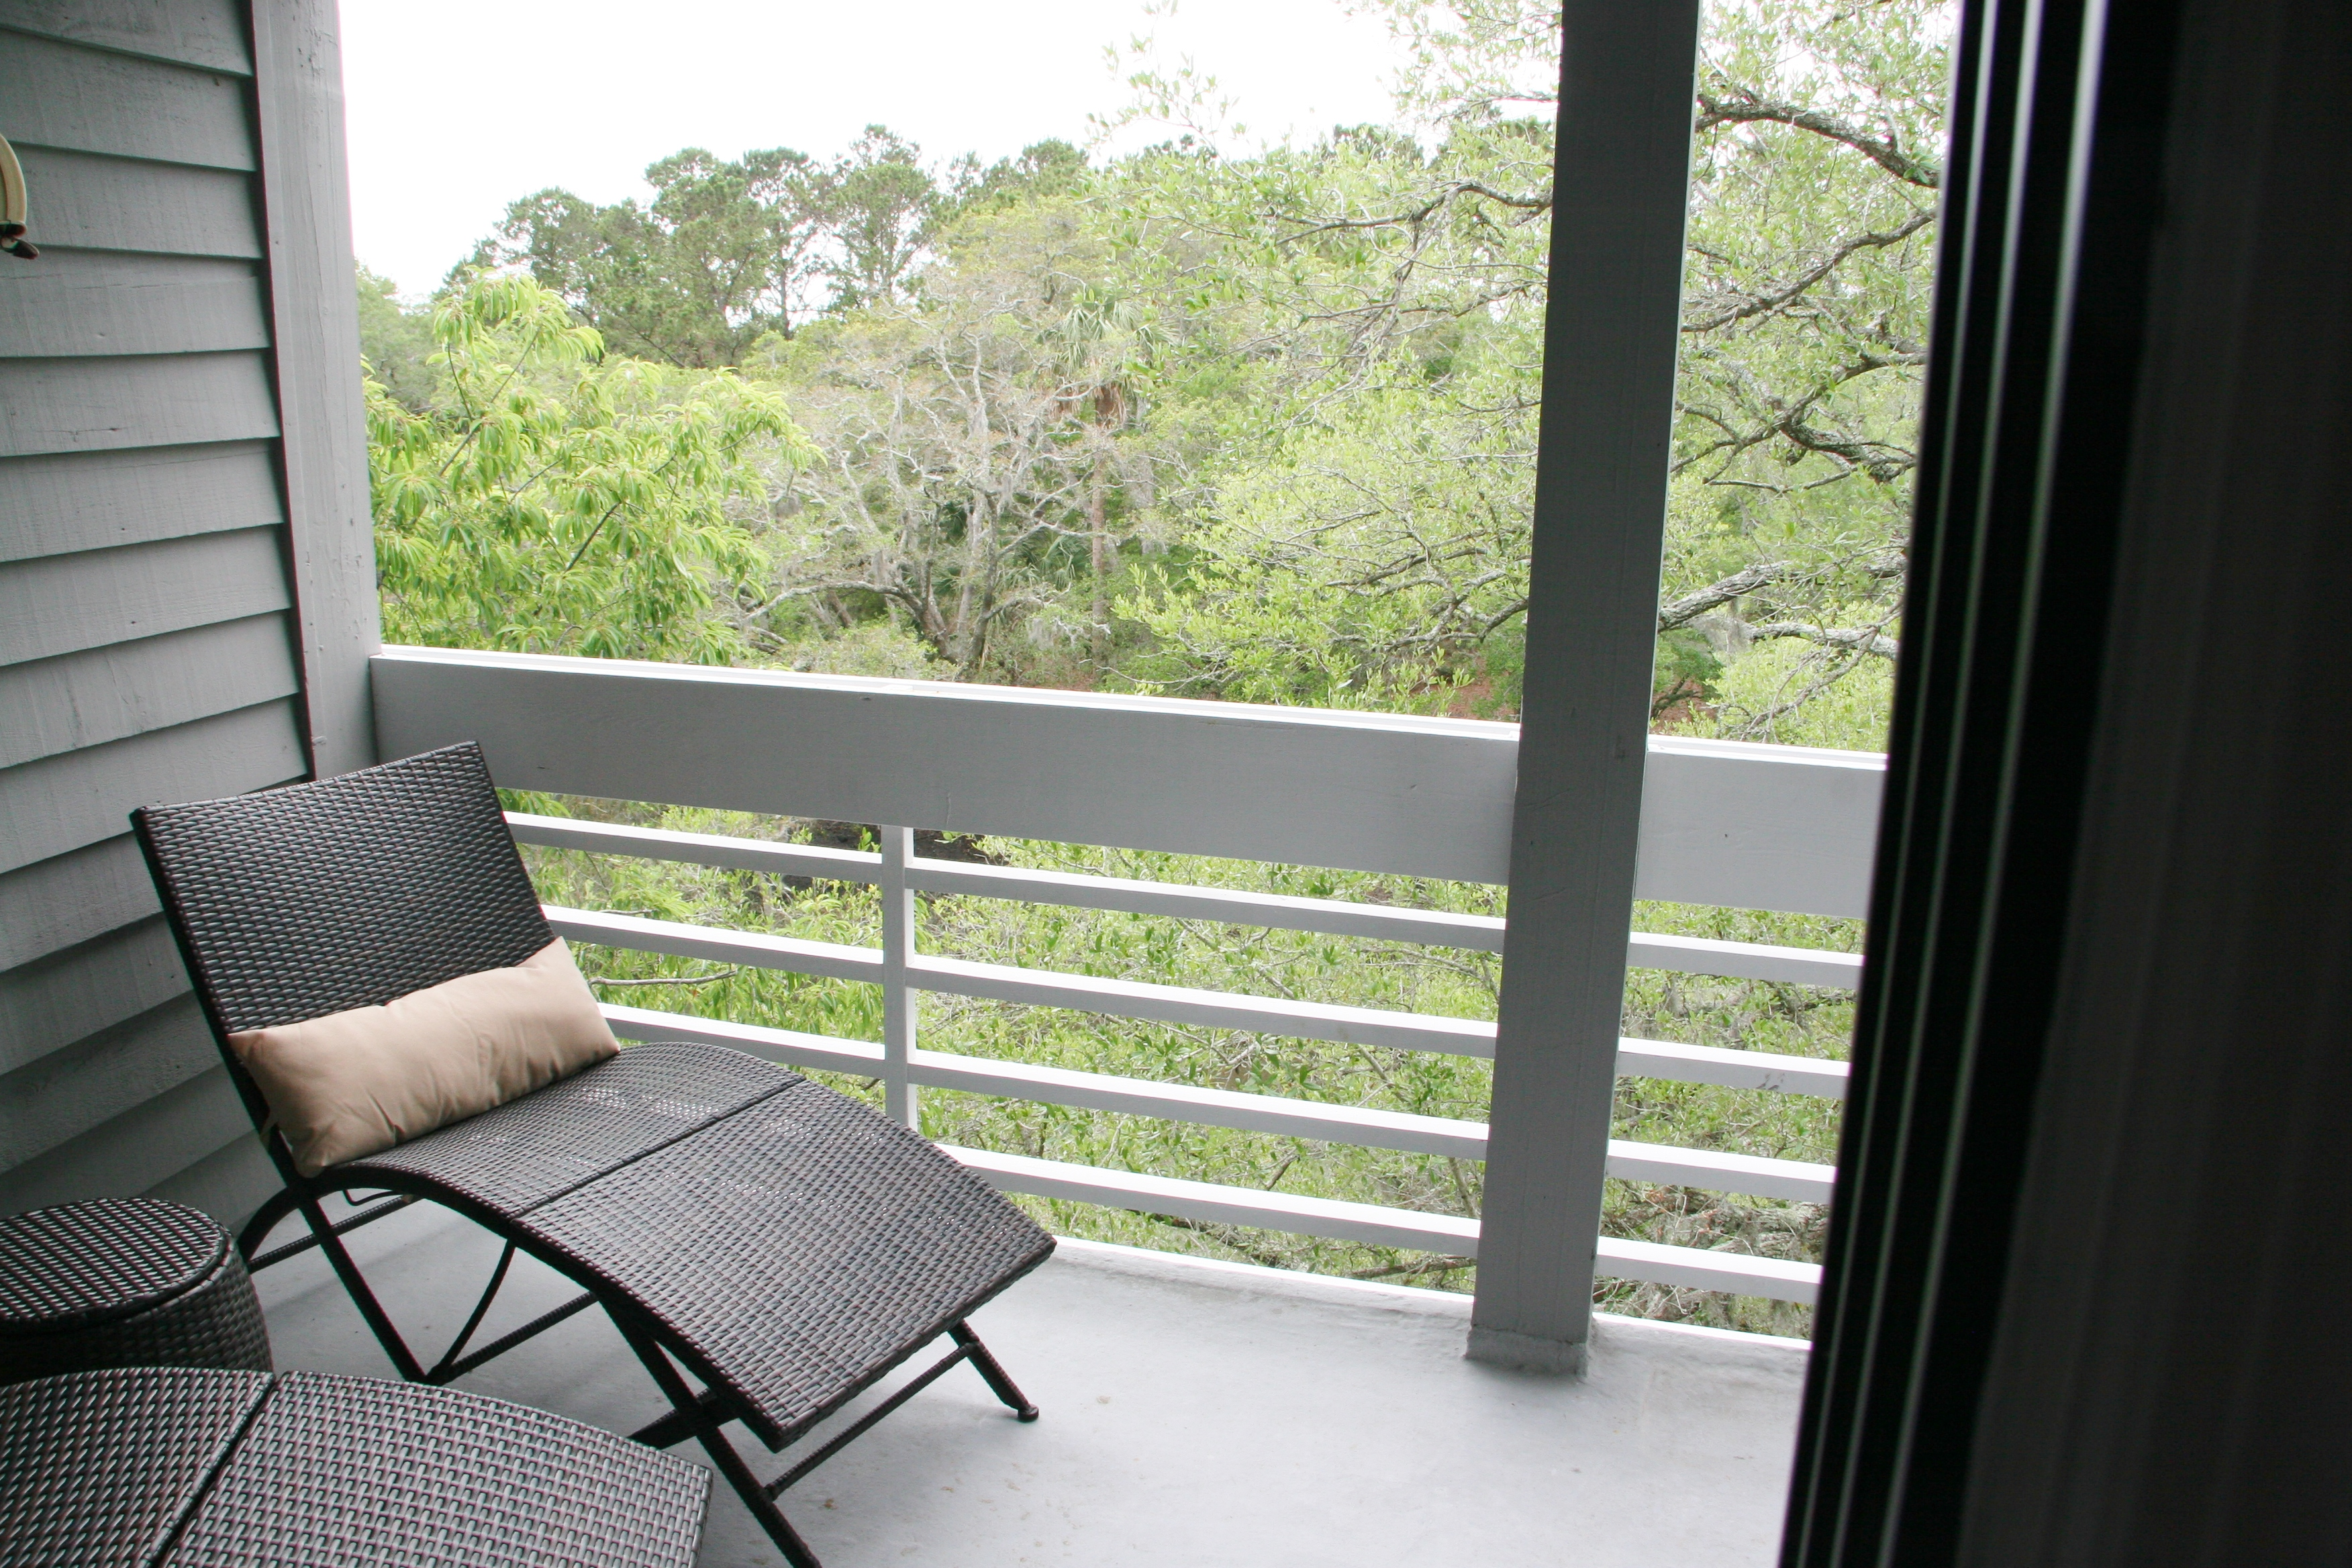 Relax with a book on the deck overlooking the marsh view.